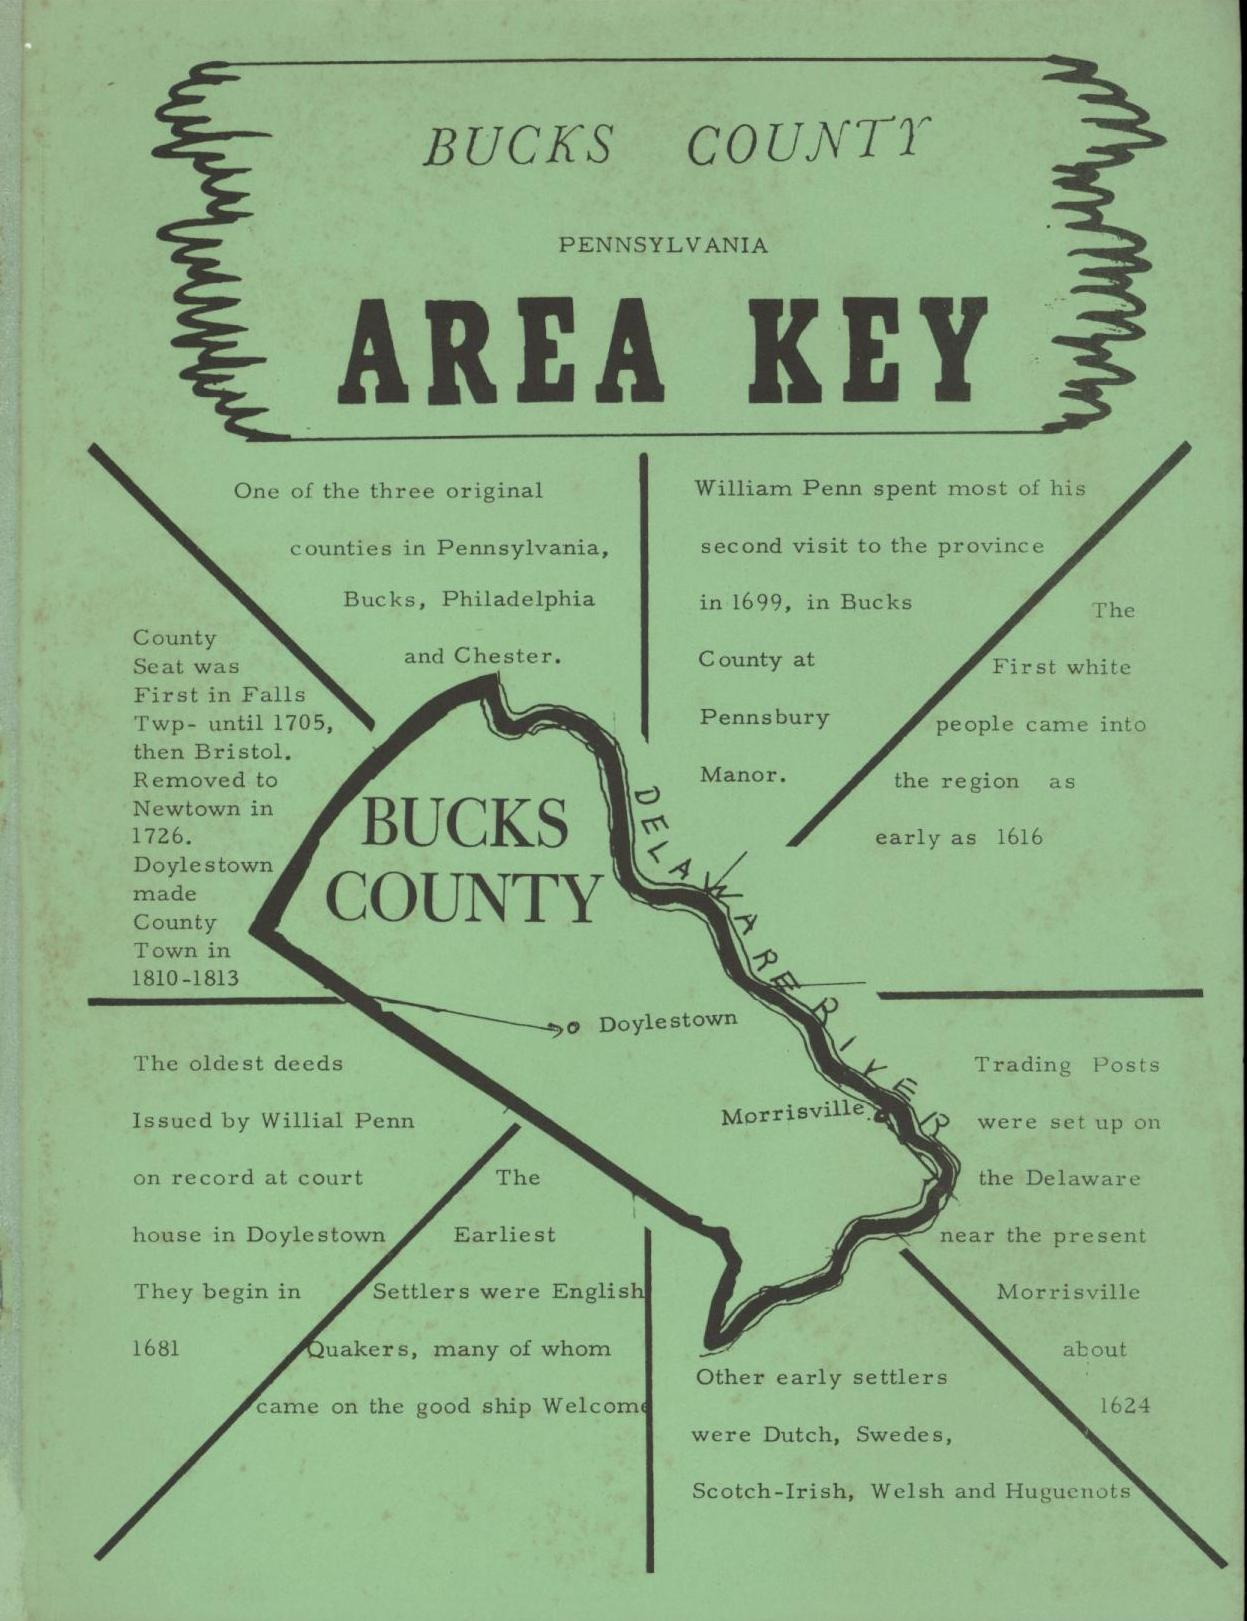 Image for Bucks County Pennsylvania Area Key: A Guide to the Genealogical Records of Bucks County, Pennsylvania, including Maps, Charts, and Other Helpful Materials